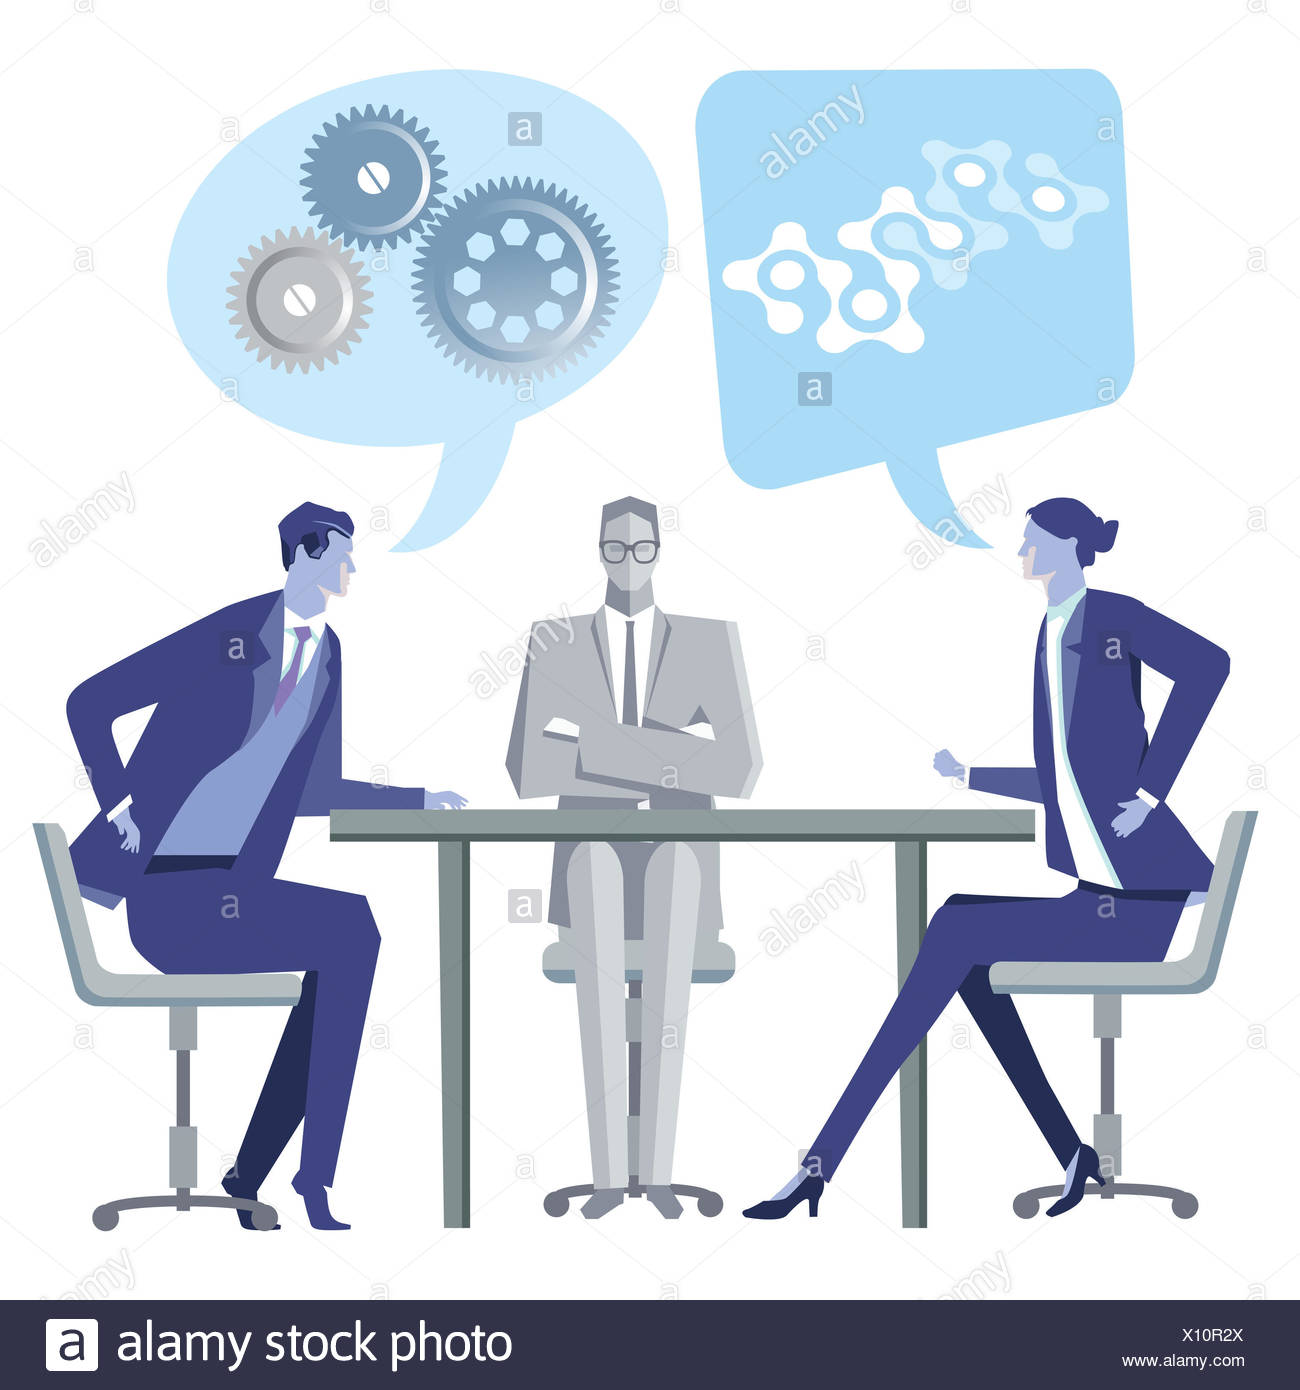 Discussion consultation meeting understanding - Stock Image